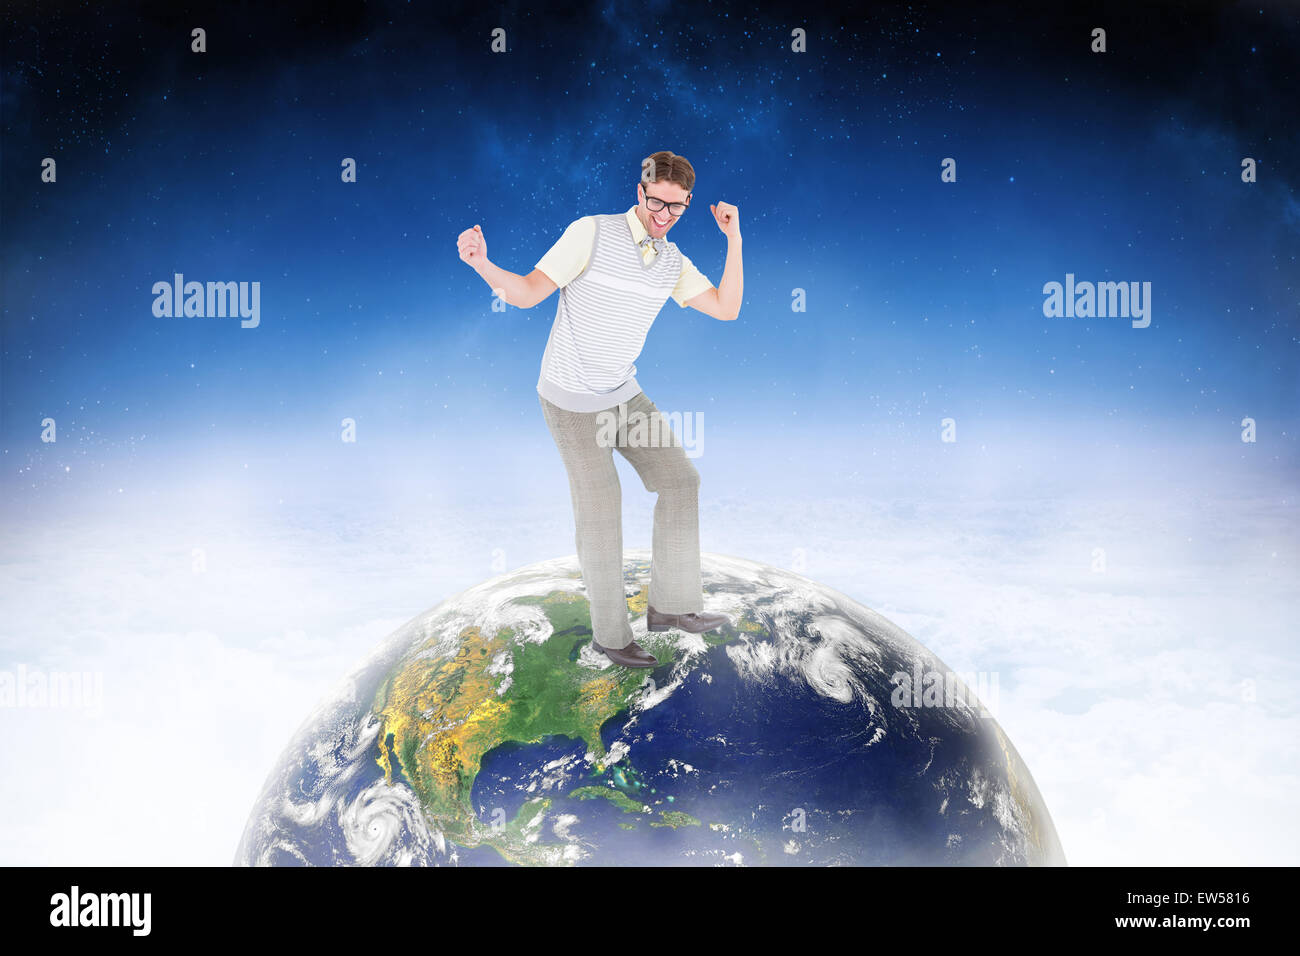 Composite image of geeky hipster dancing and smiling - Stock Image